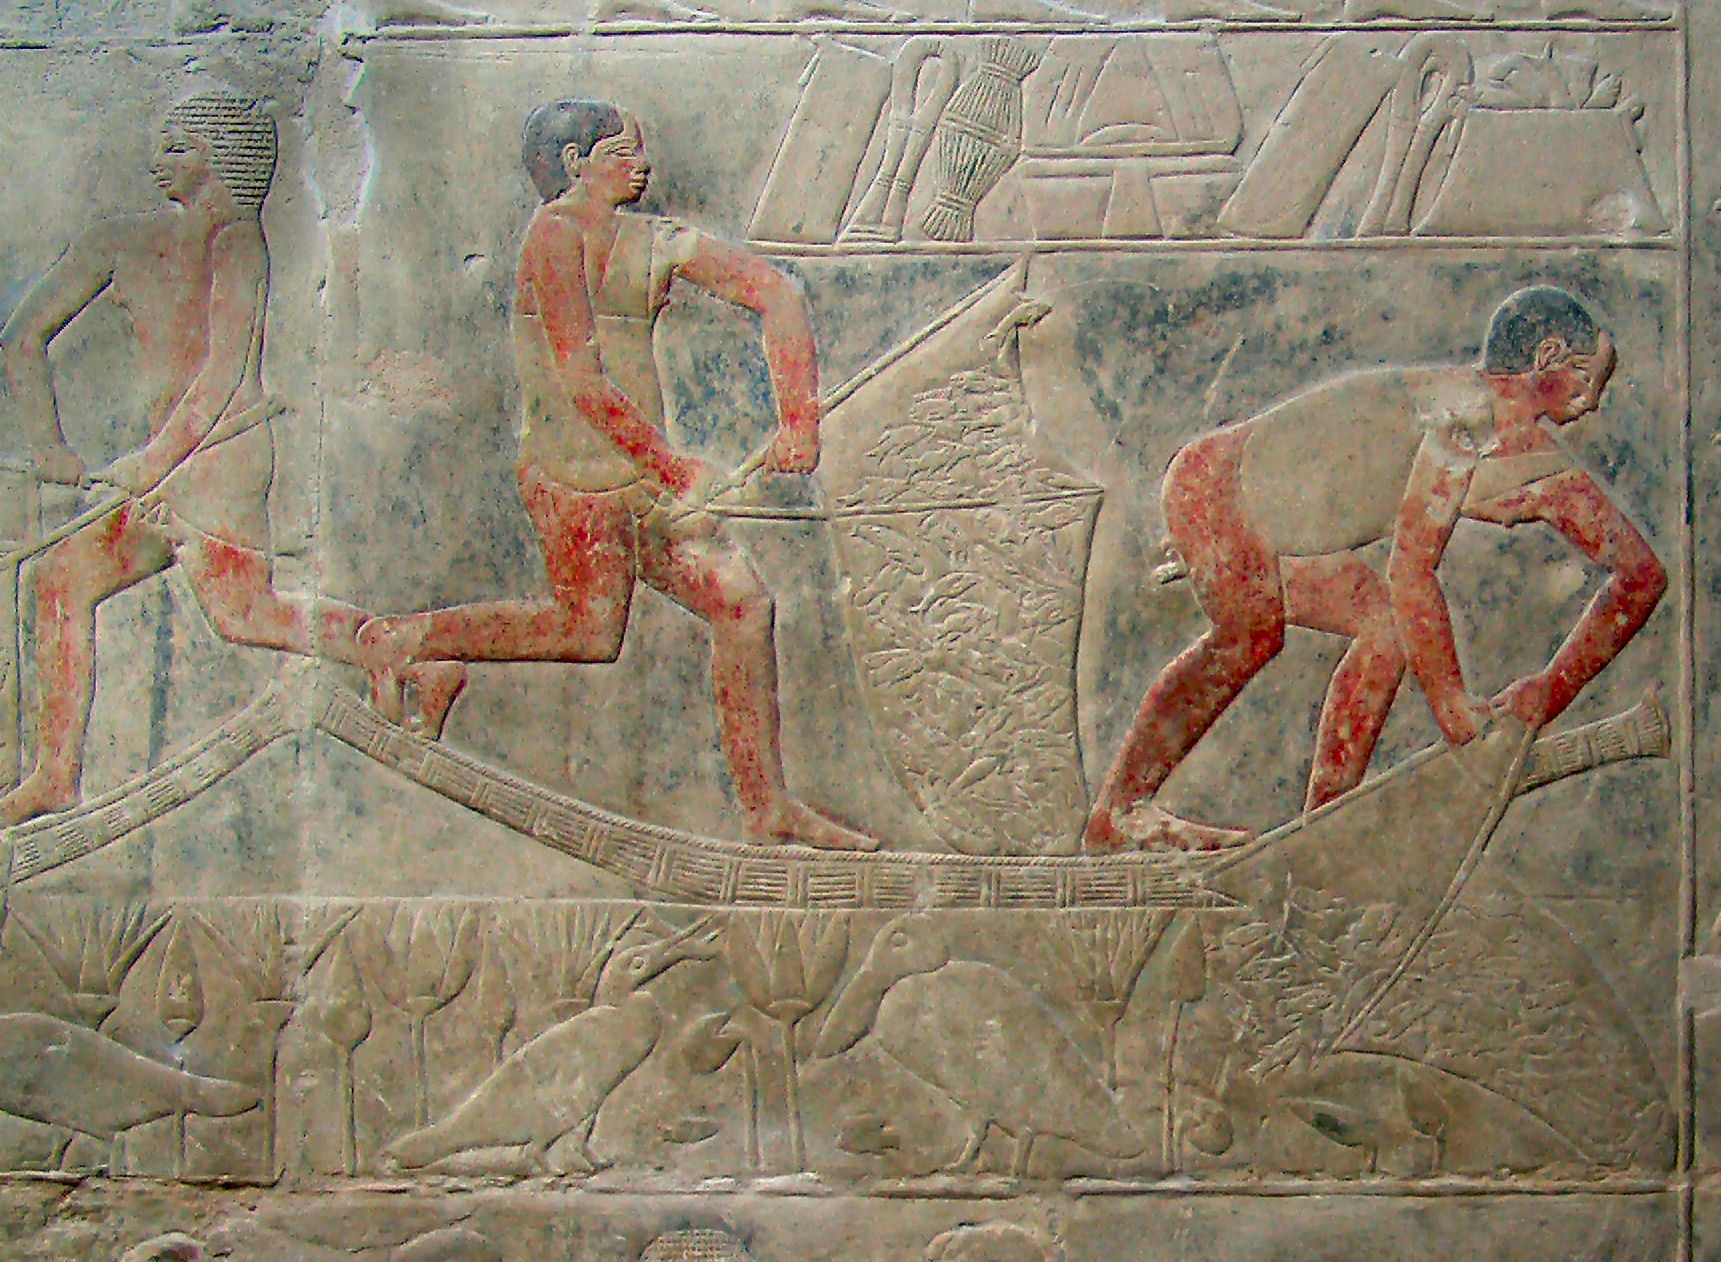 http://upload.wikimedia.org/wikipedia/commons/1/13/Fishermen_in_Mereruka%E2%80%99s_tomb_%28Kairoinfo4u%29.jpg